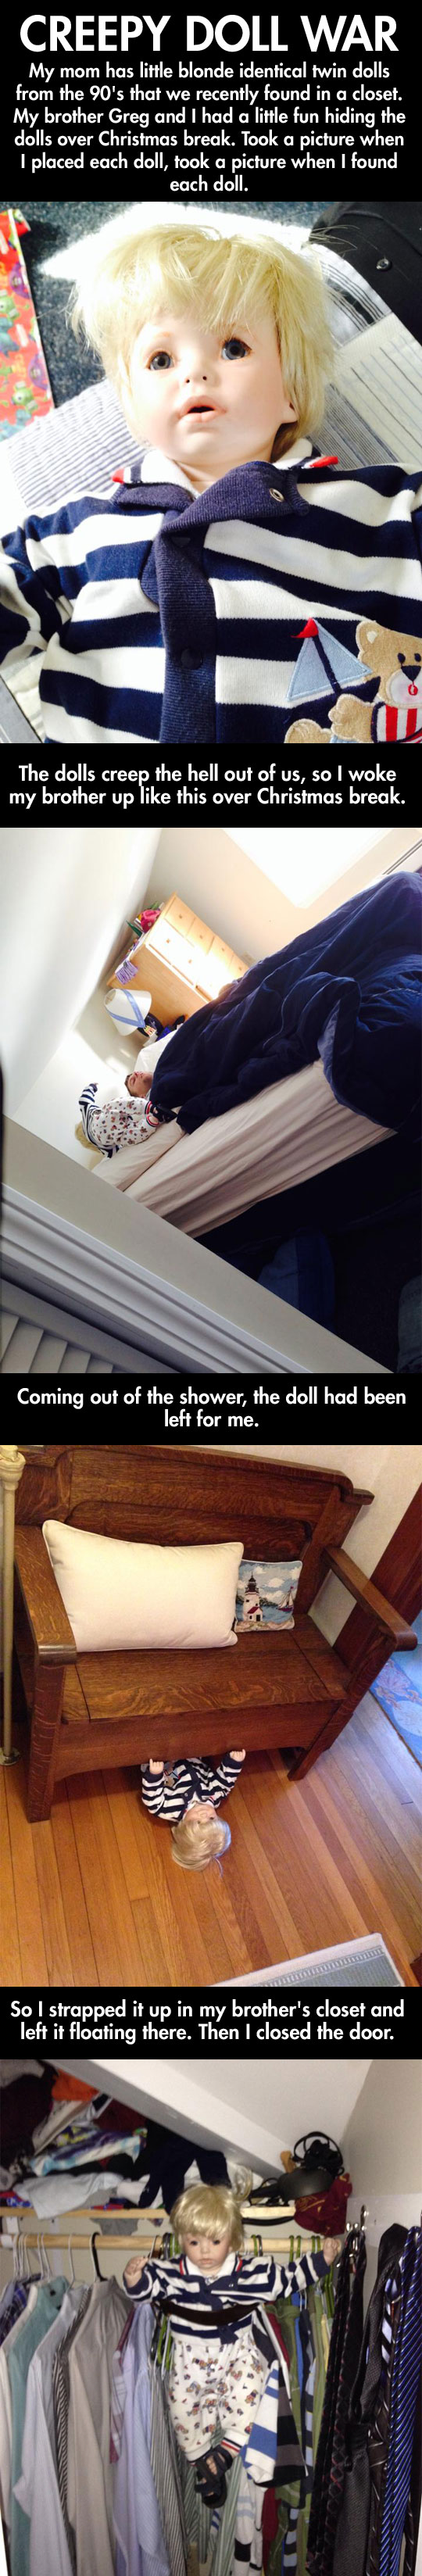 Creepy doll war...